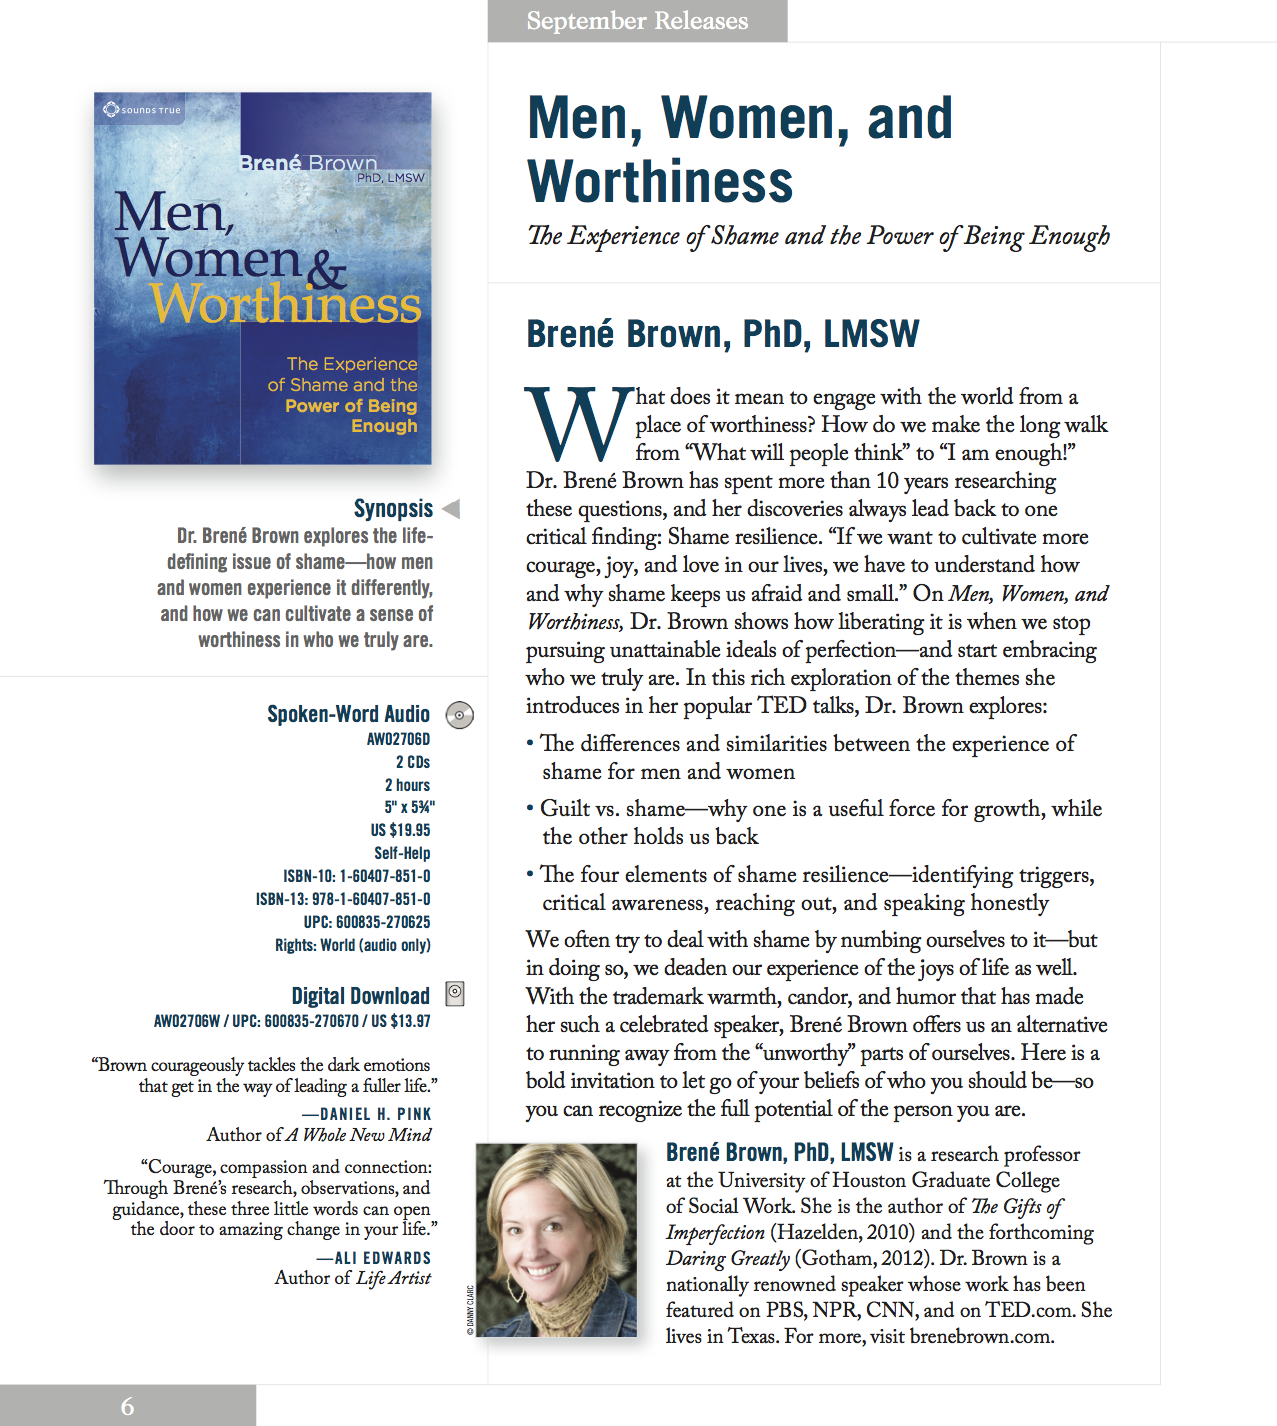 men-women-worthiness-brene-brown-article-details.jpg